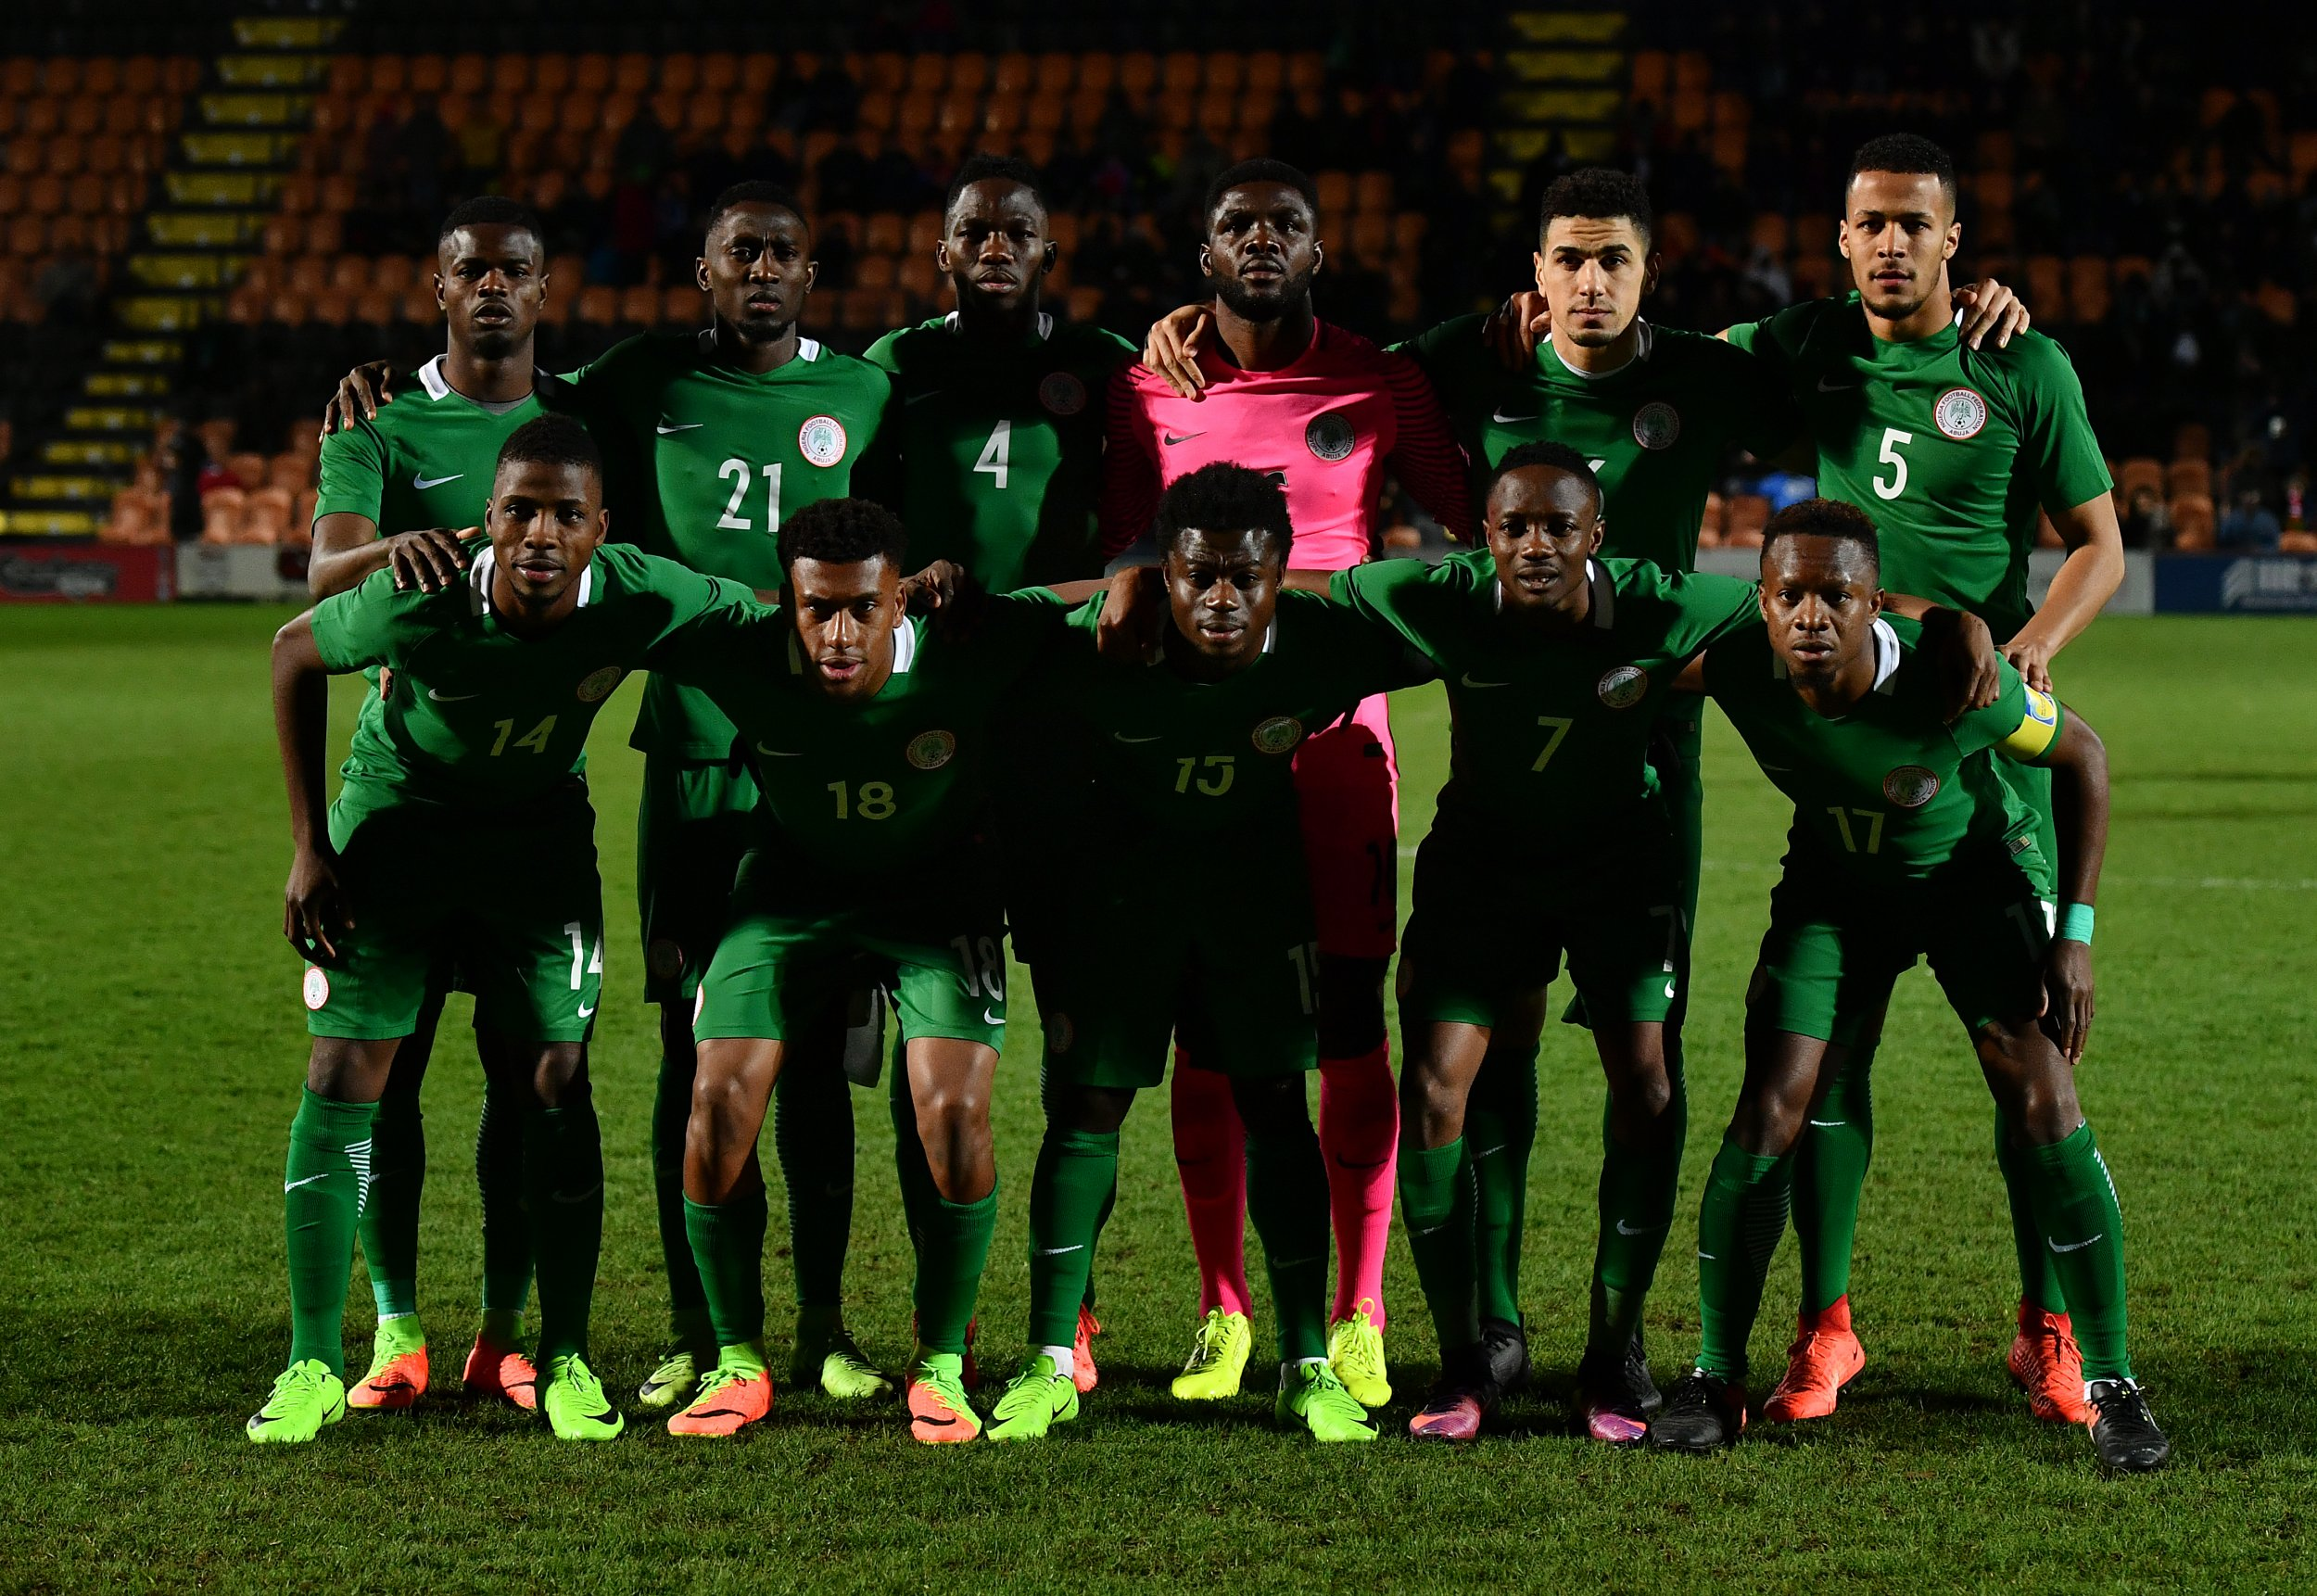 The Nigeria team poses for a group photo at The Hive, Barnet, March 23.